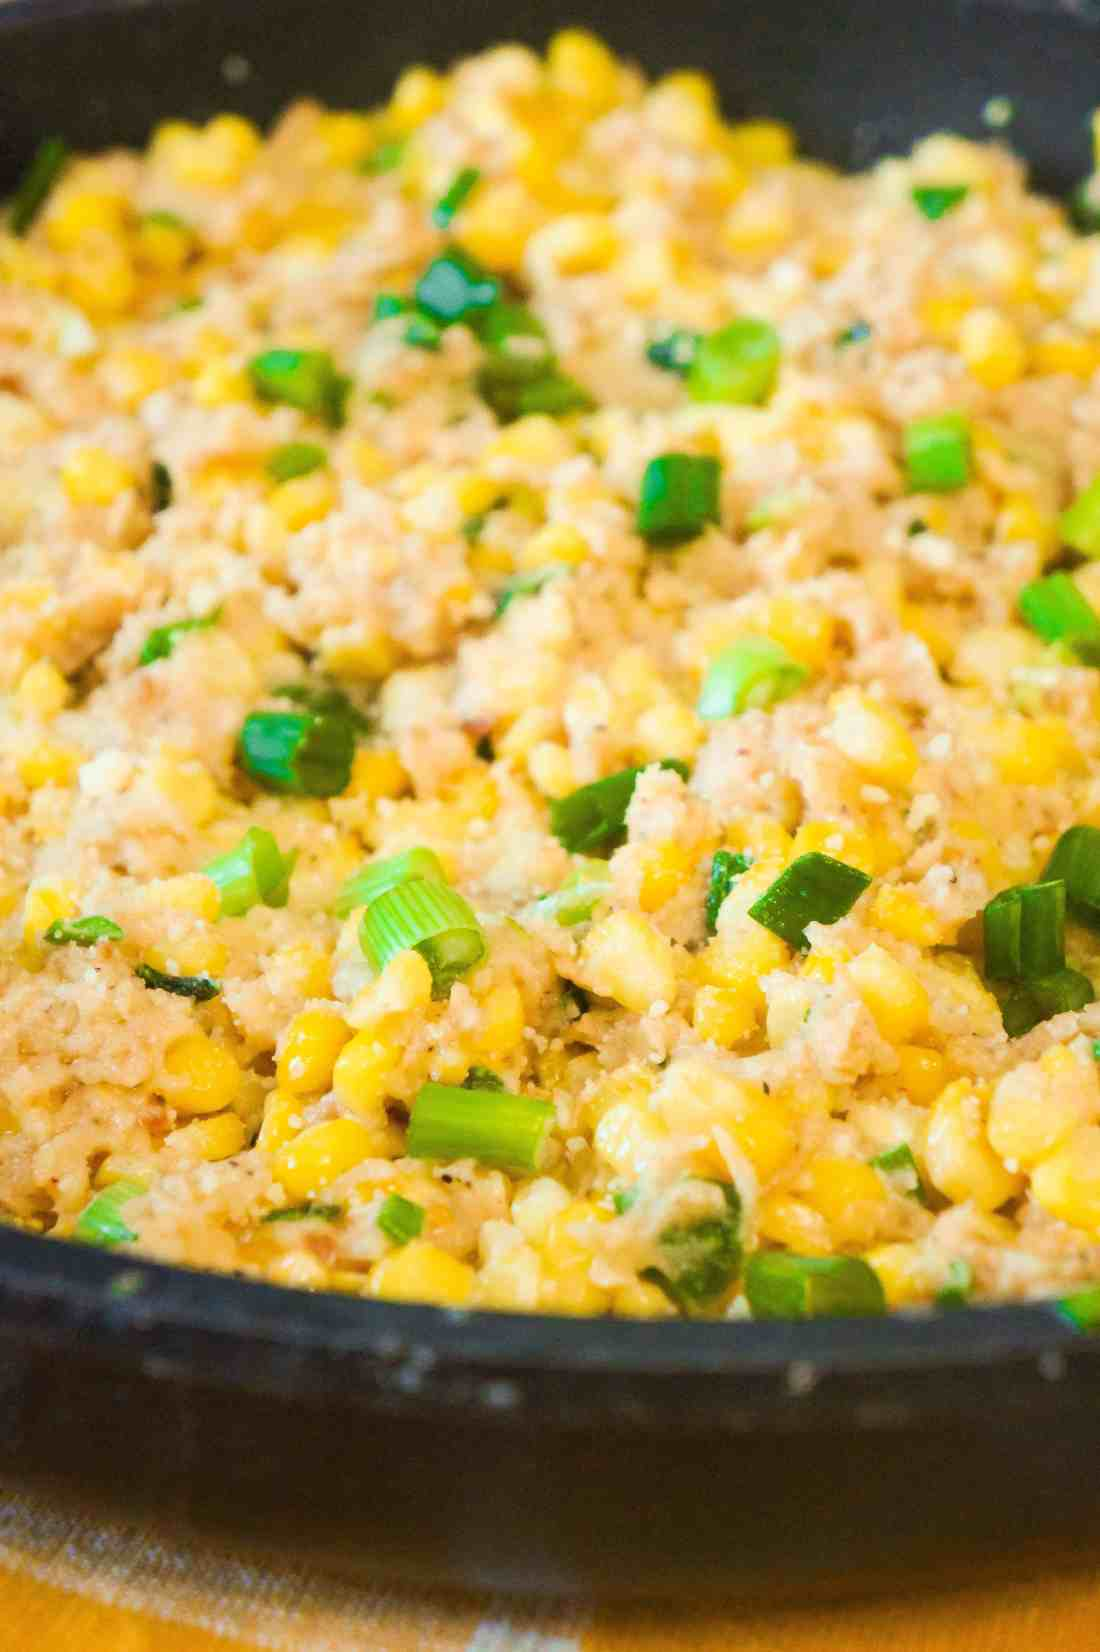 Corn Side Dish loaded with Ritz Cracker crumbs, Swiss cheese and Parmesan.